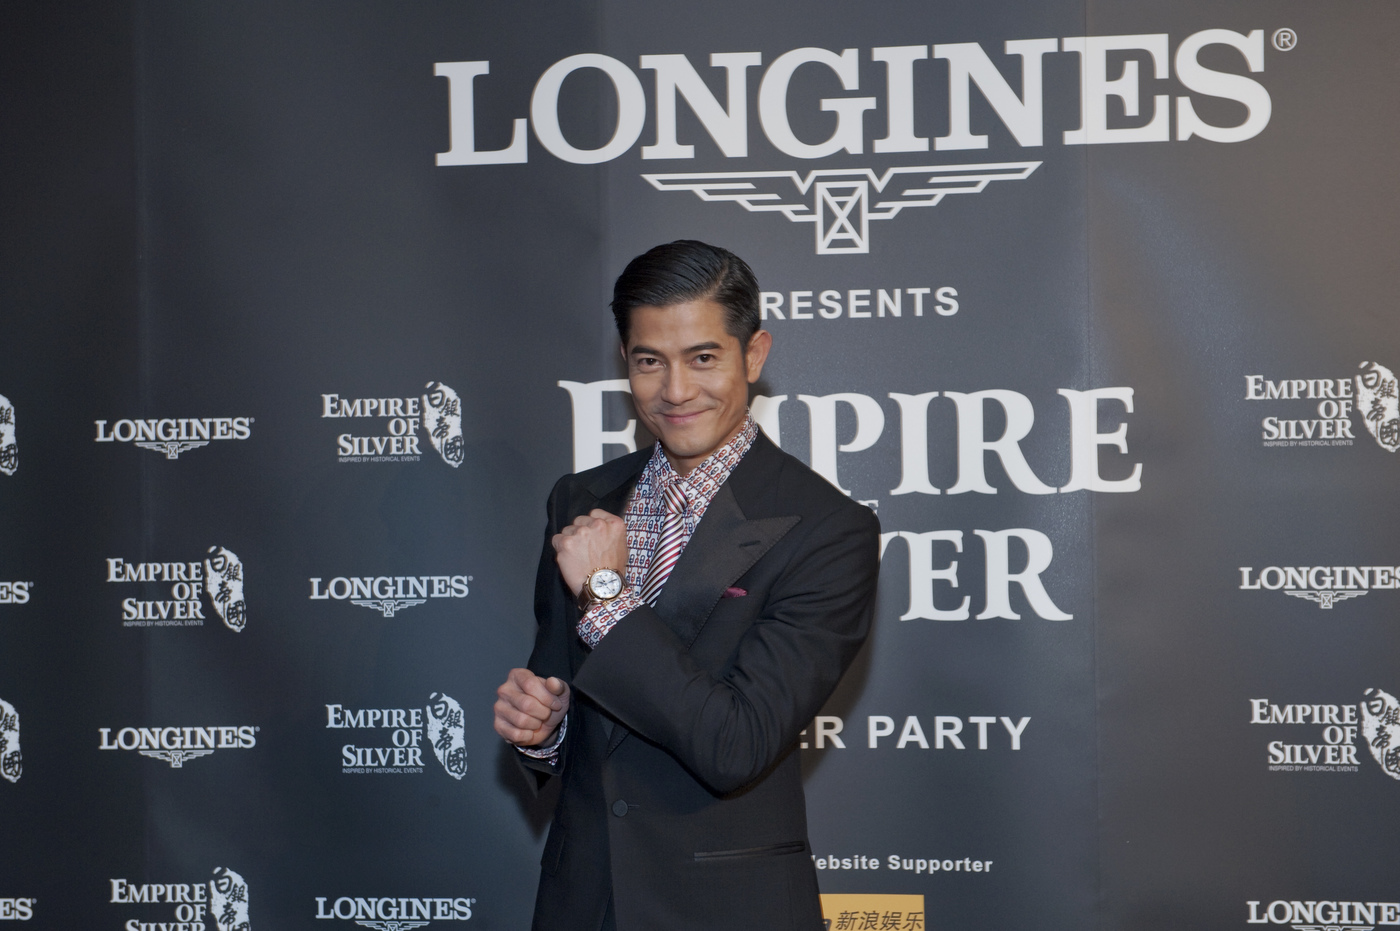 Longines Corporate Event: Longines presents Empire of Silver, starring Ambassador of Elegance, Aaron Kwok 1